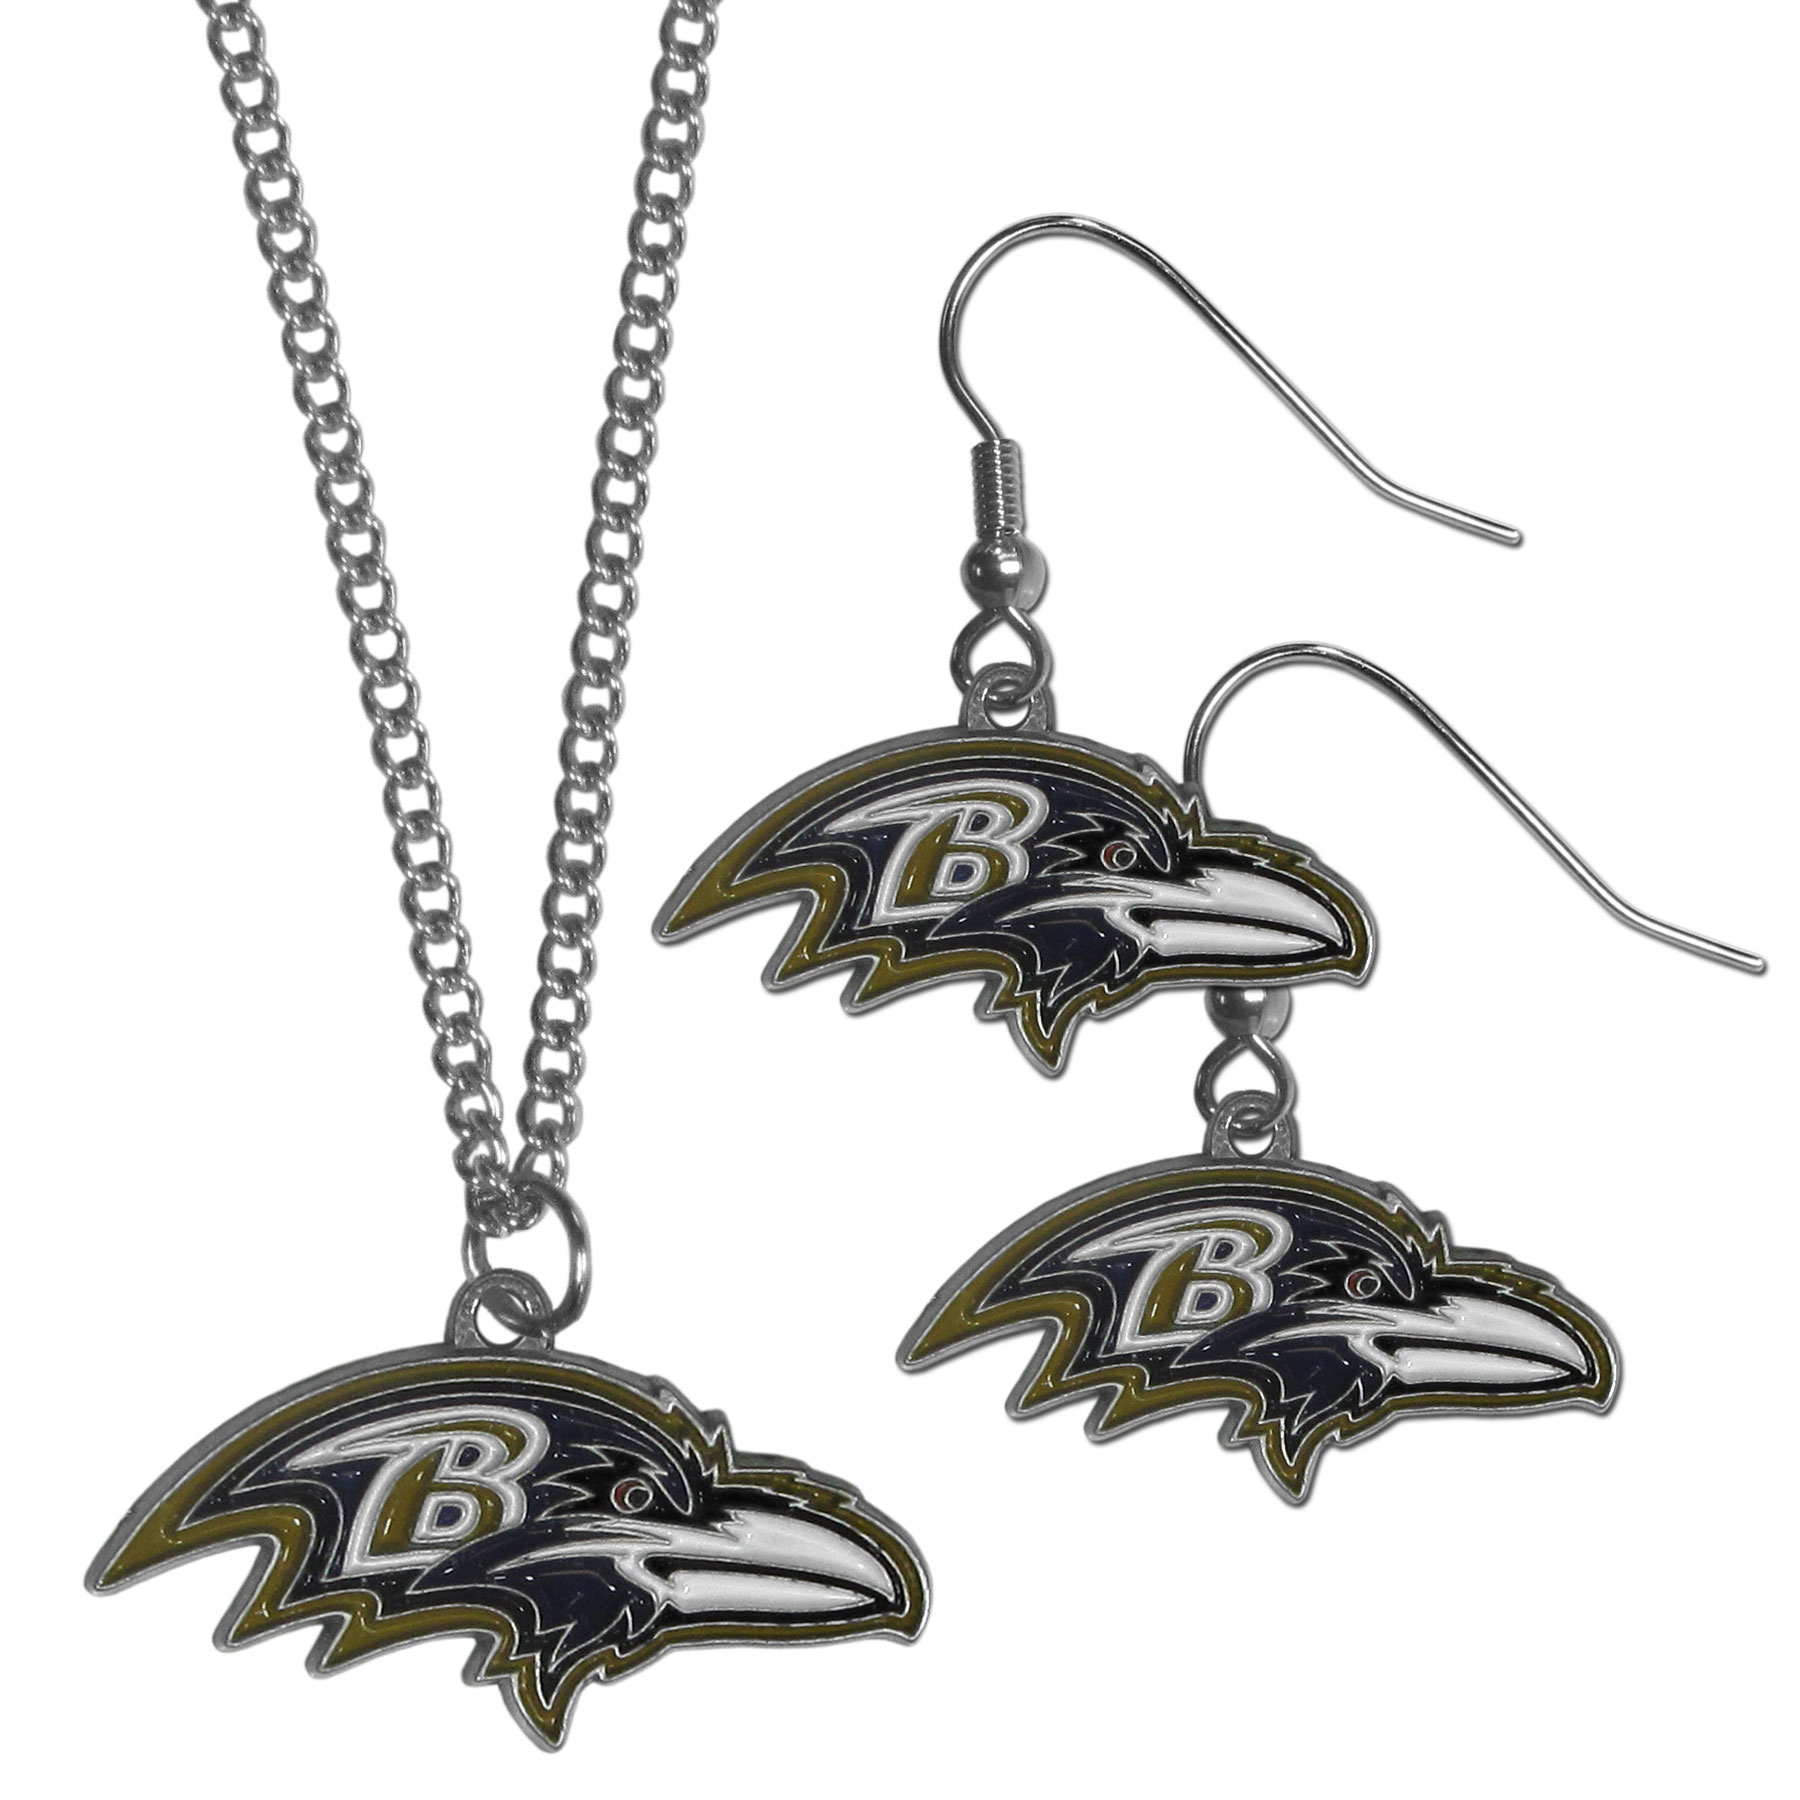 Baltimore Ravens Dangle Earrings and Chain Necklace Set - This classic jewelry set contains are most popular Baltimore Ravens dangle earrings and 22 inch chain necklace. The trendy, dangle earrings are lightweight and feature a fully cast metal team charm with enameled team colors. The matching necklace completes this fashion forward combo and is a spirited set that is perfect for game day but nice enough for everyday.